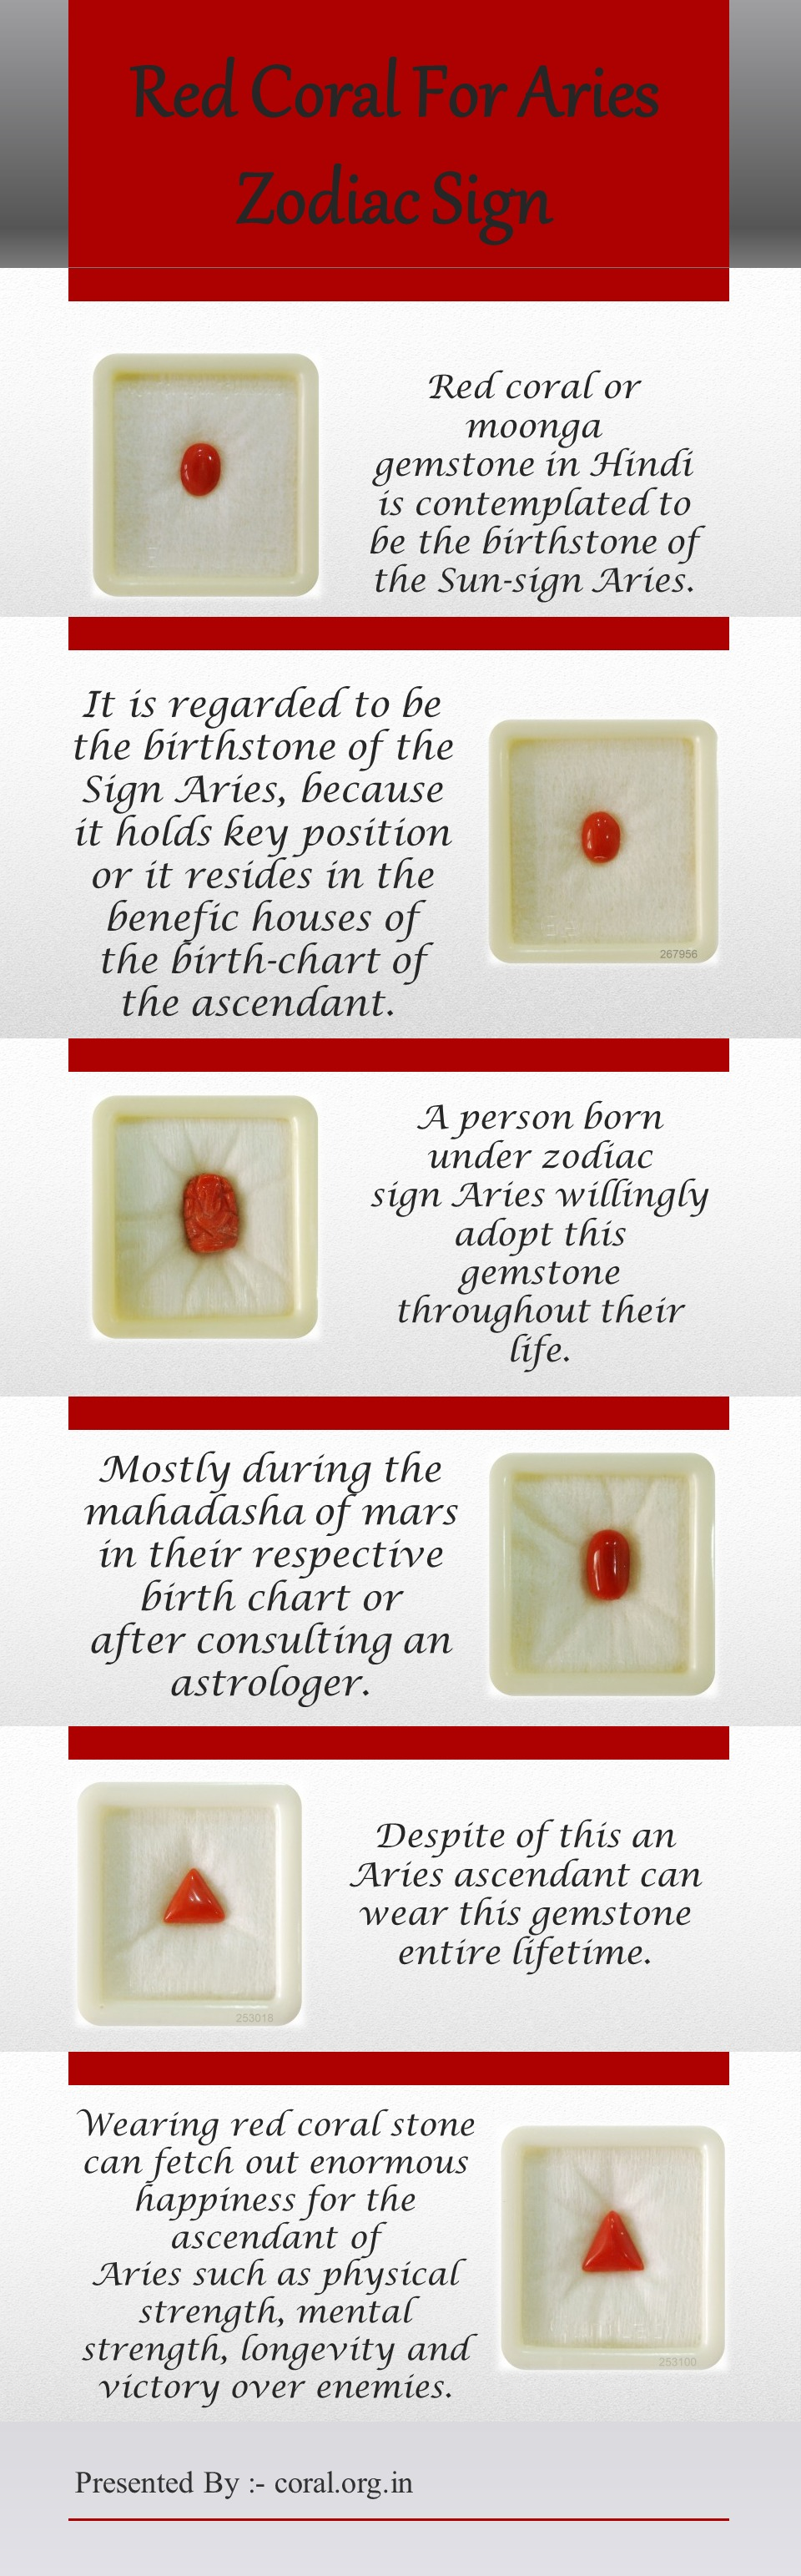 Red Coral Or Moonga Gemstone In Hindi Is Contemplated To Be The